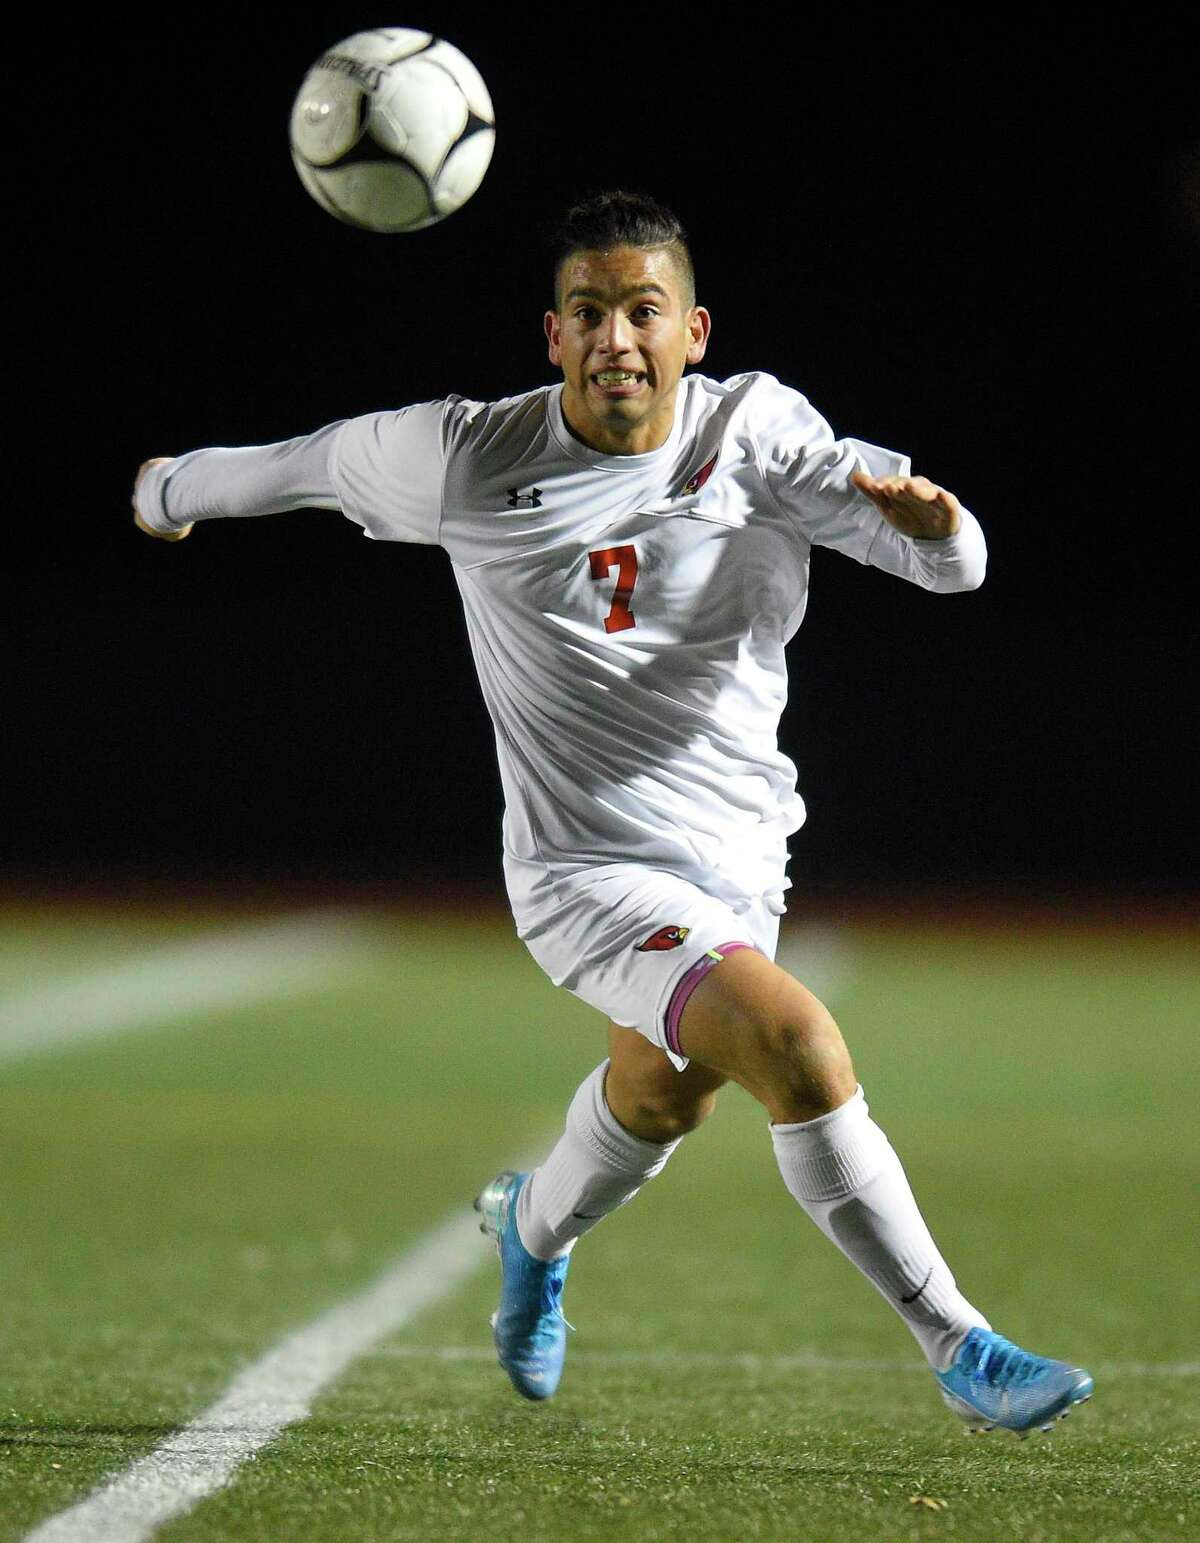 Greenwich's Farid Ghallya charges the ball in the first half against Hall in the CIAC Class LL boys soccer championship on Saturday at Veterans Memorial Stadium 19 in New Britian.